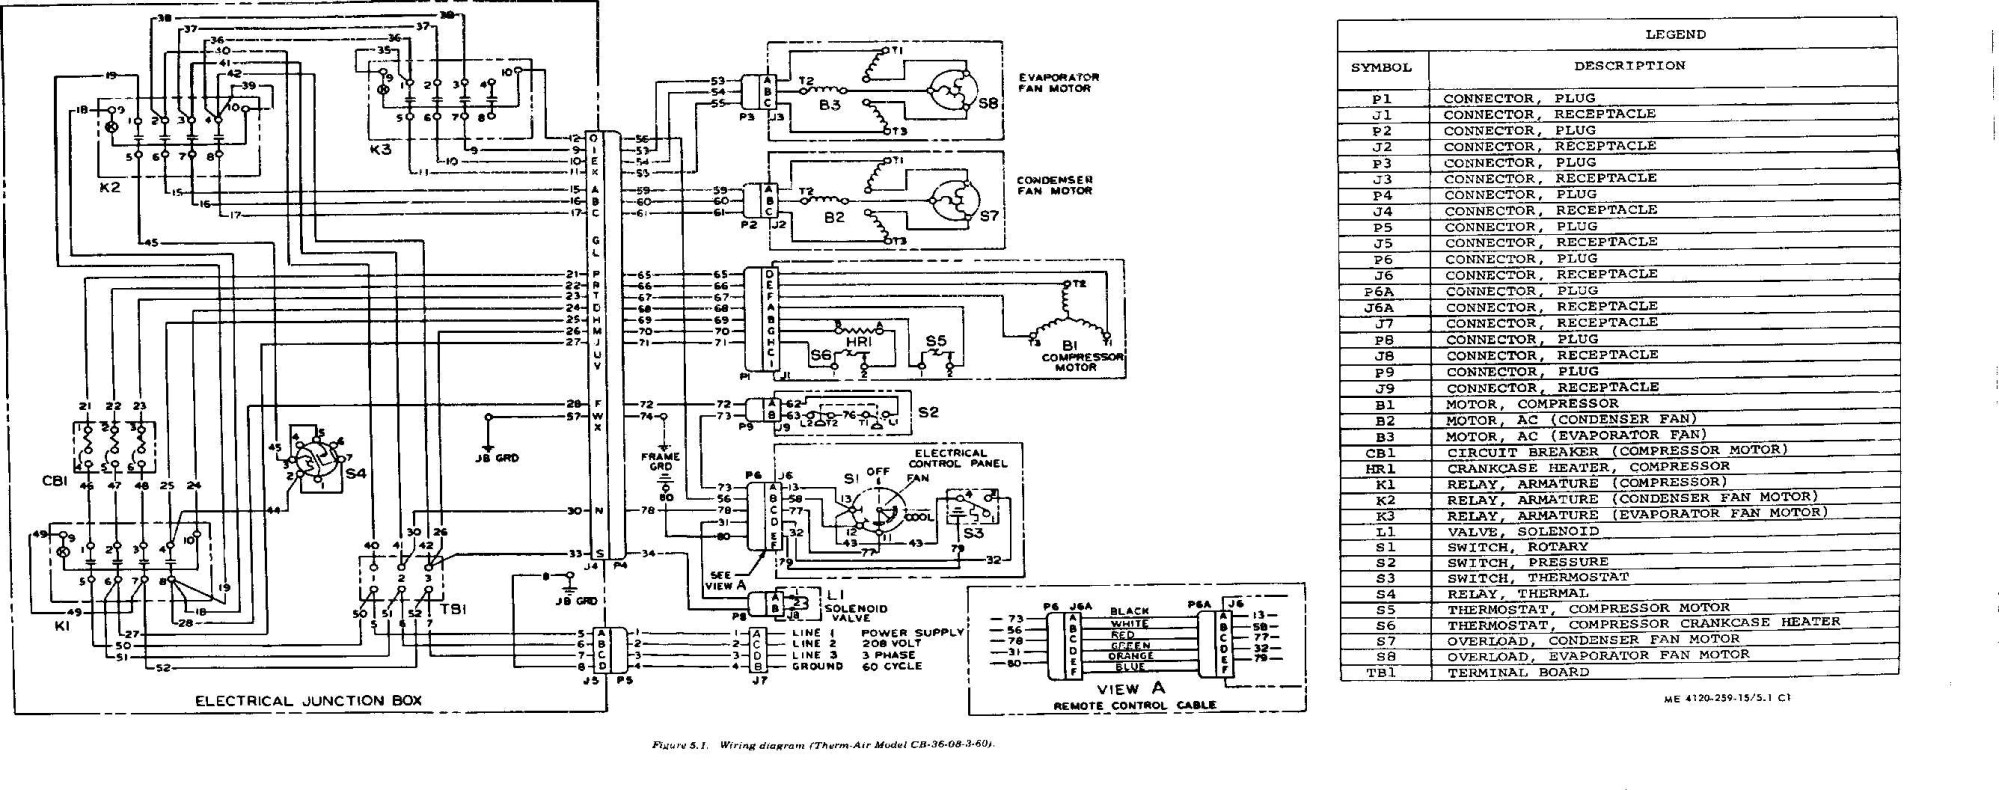 hight resolution of york schematics y14 wiring diagrams lol york schematics y14